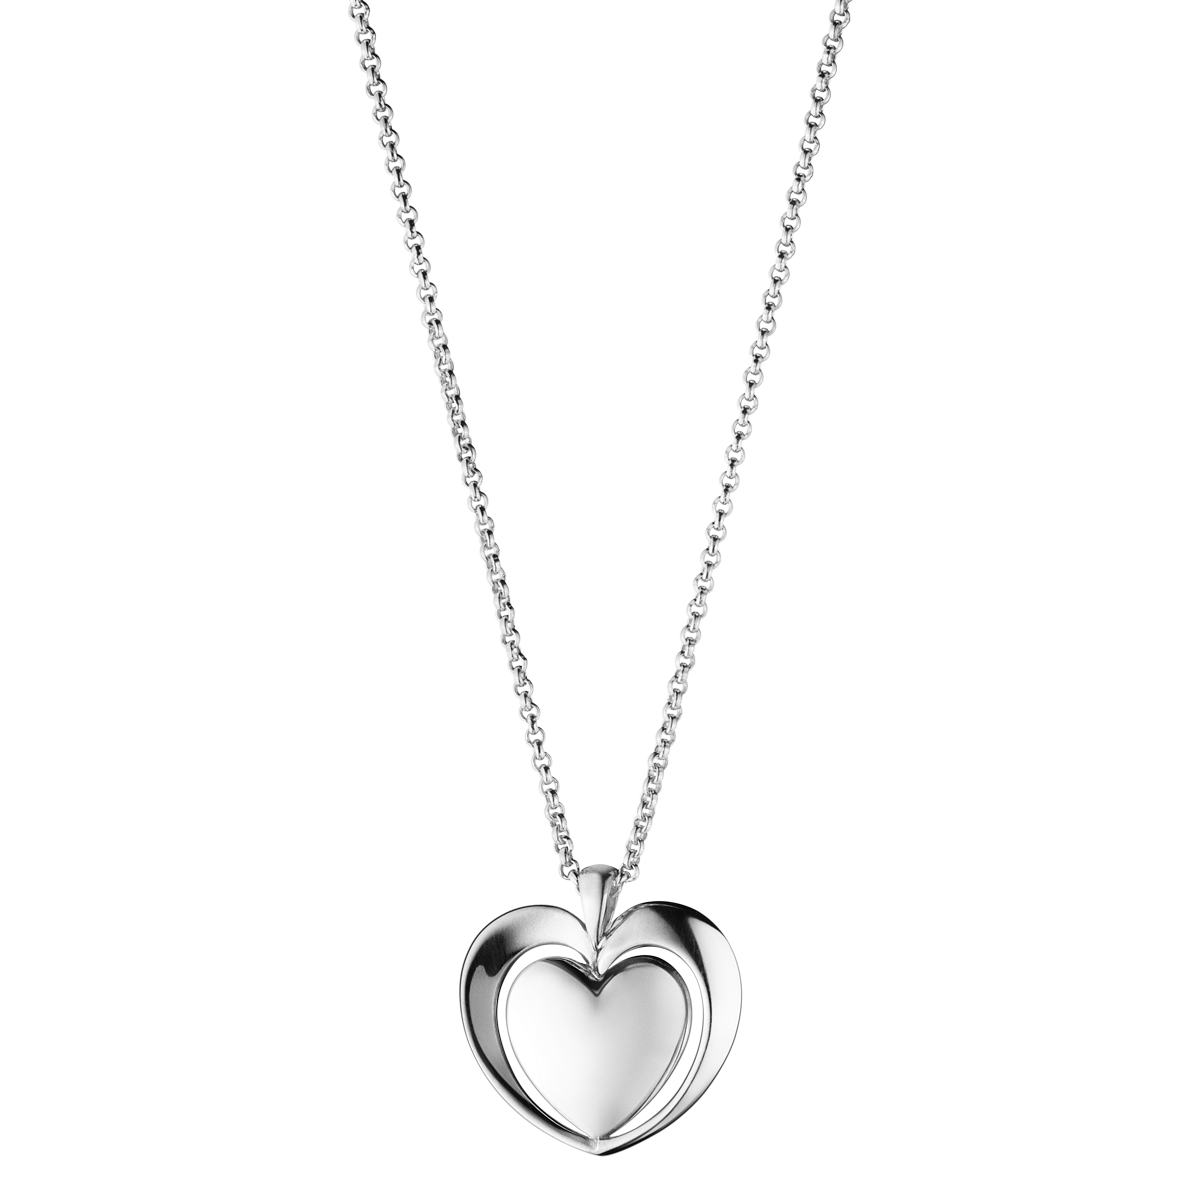 Pendent clipart jewelry Image png pendant Jewelry download